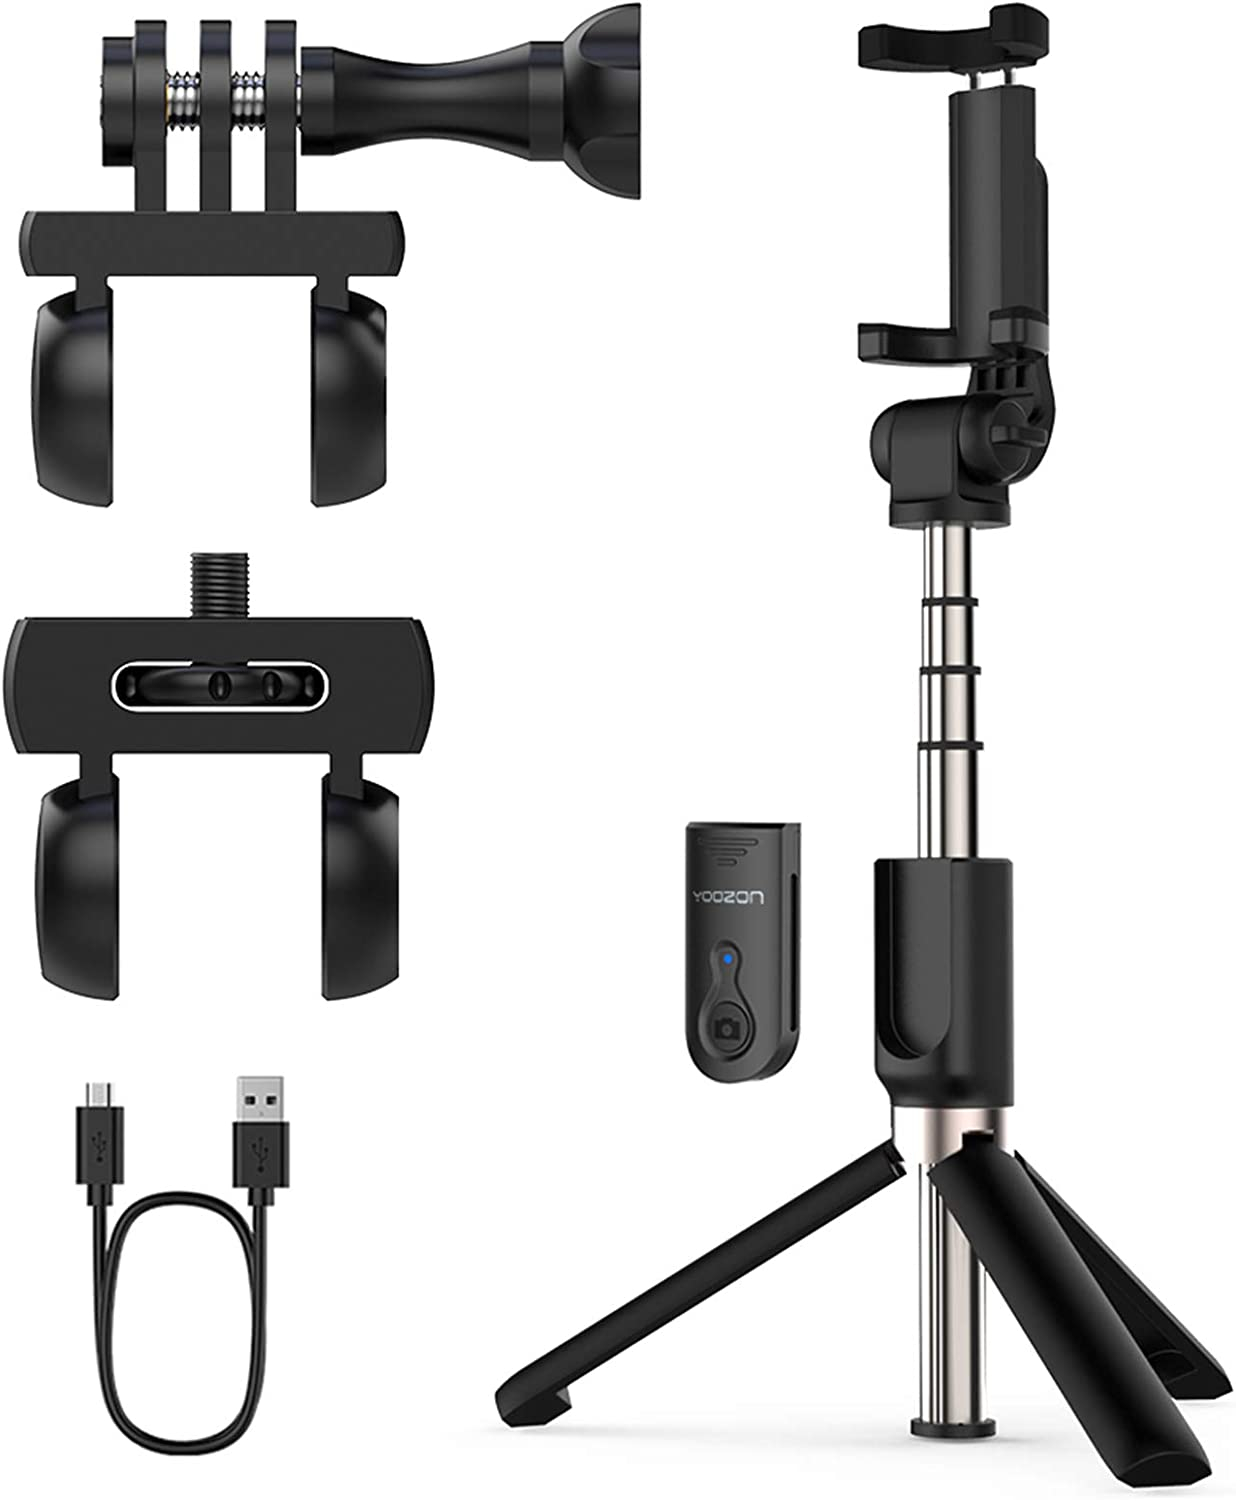 Yoozon Upgraded Selfie Stick Tripod Bluetooth, Phone & Camera Tripod Selfie Stick with Wireless Remote Shutter for Gopro,Action Cameras, iPhone 11/11 Pro/11 Pro Max/Xs MAX/Galaxy Note 10/Note 10 Plus